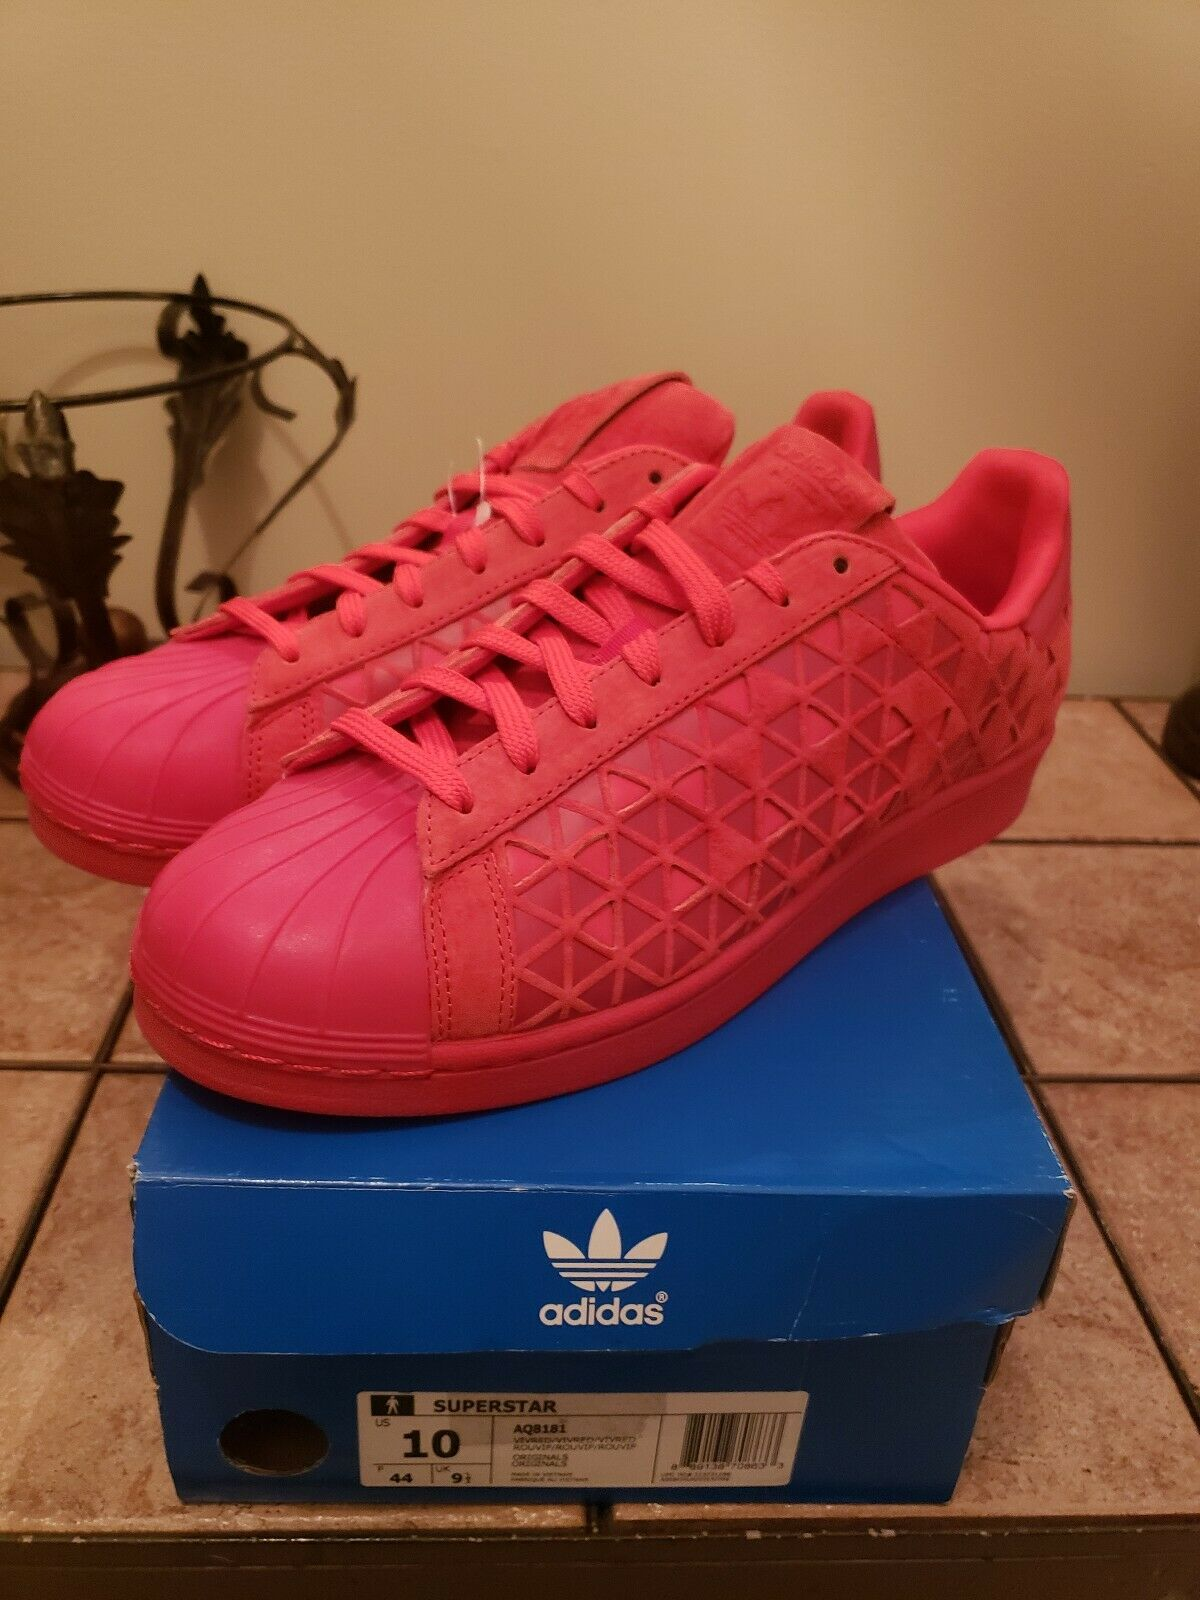 New.Adidas Superstar Xeno AQ8181 Reflective Red Casual shoes. Men's Size 10